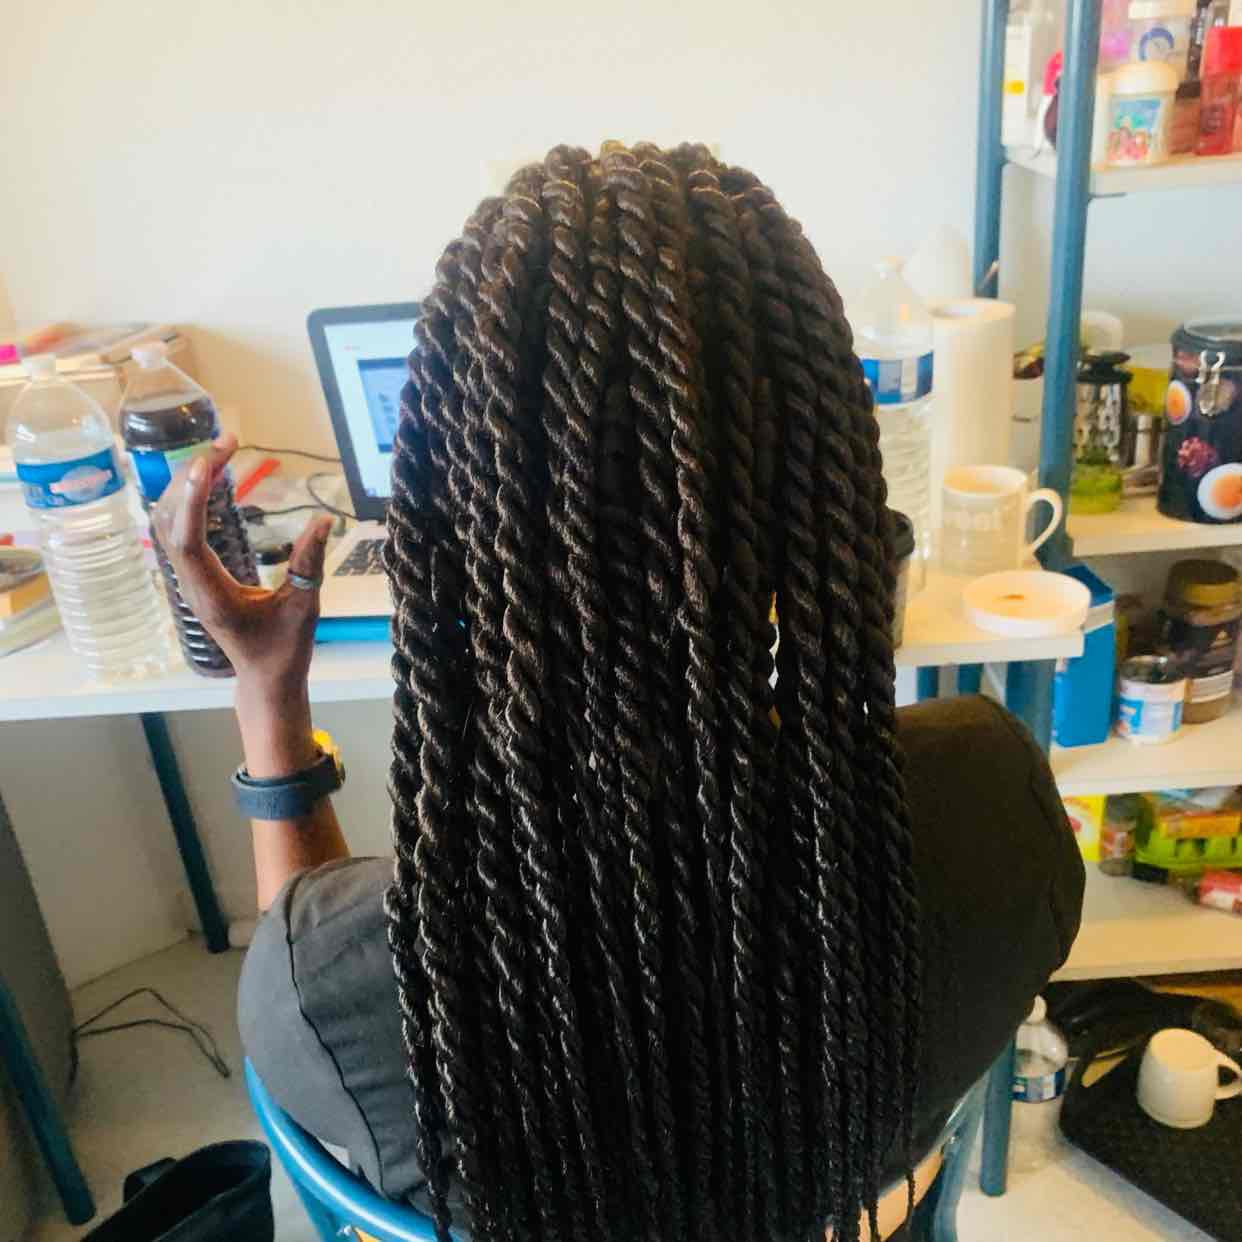 salon de coiffure afro tresse tresses box braids crochet braids vanilles tissages paris 75 77 78 91 92 93 94 95 HYGXRGMV